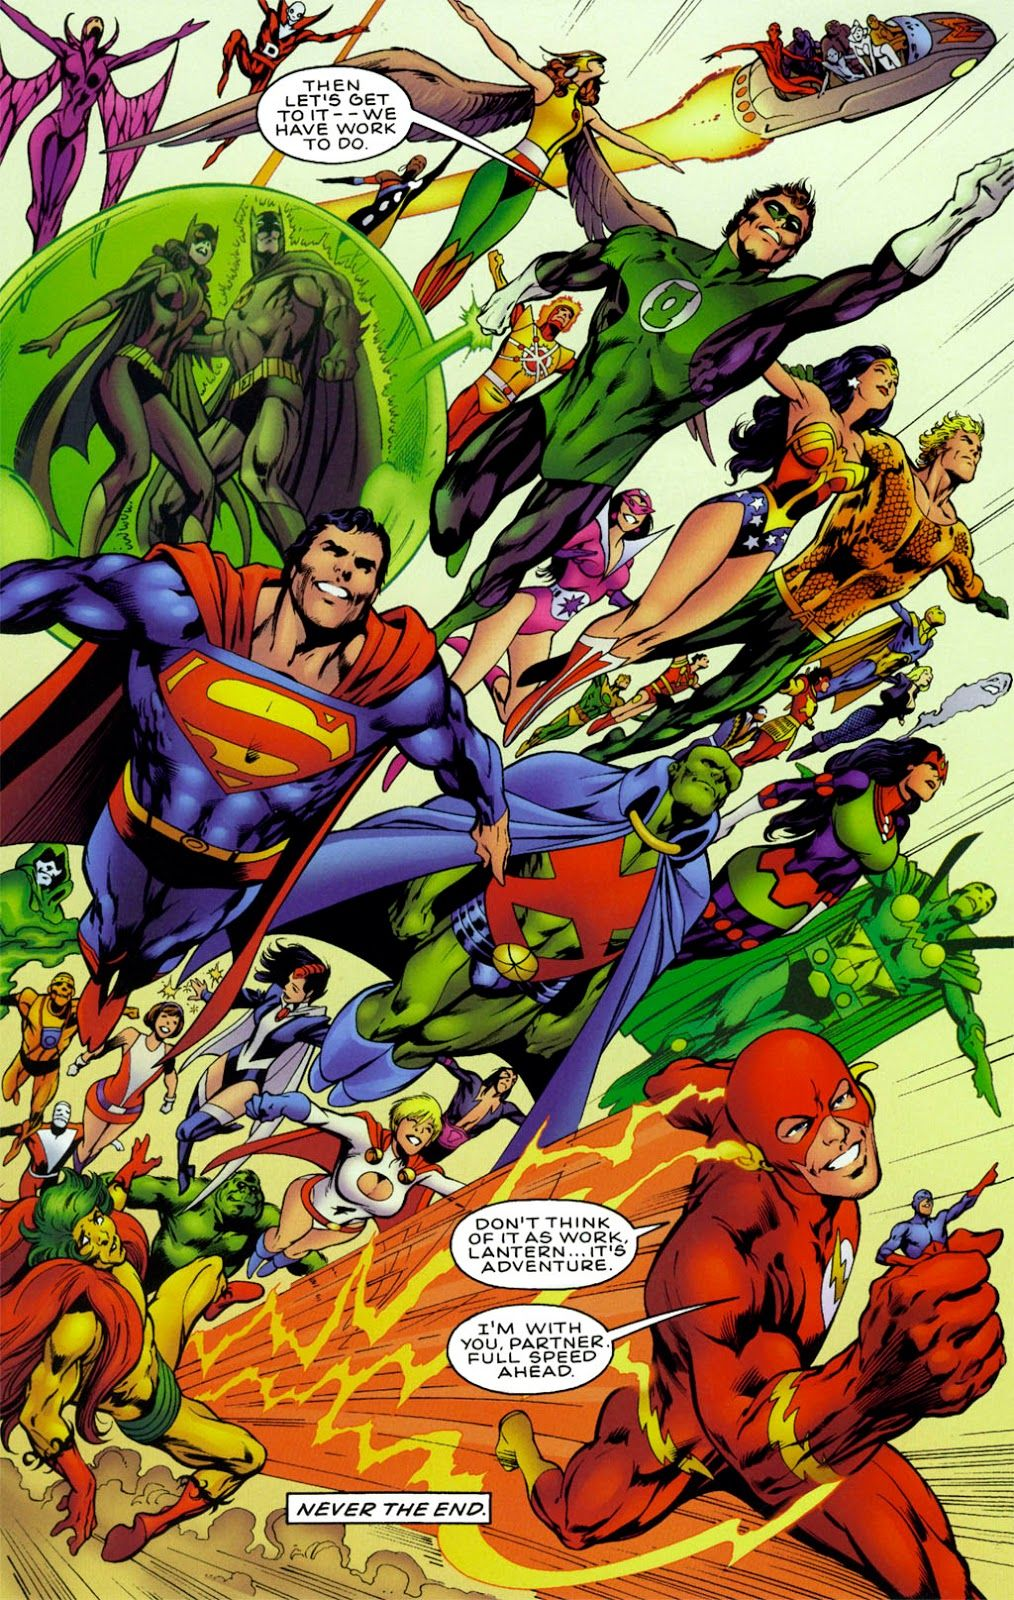 JLA : Another Nail Issue #3 - Read JLA : Another Nail Issue #3 comic ...